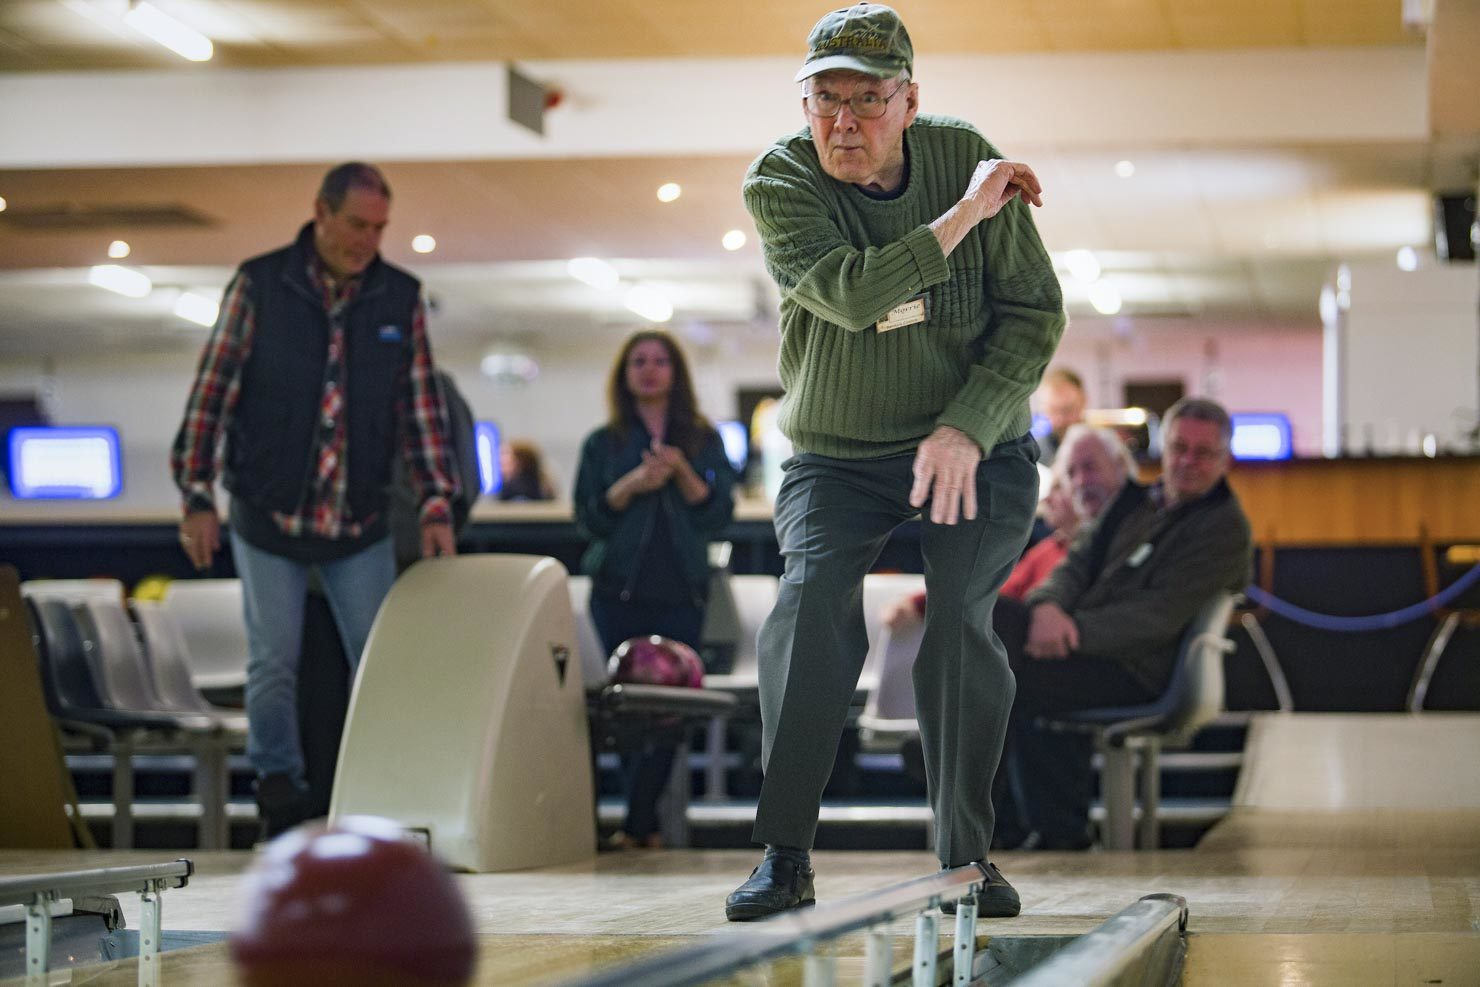 Elderly, aged care, man playing ten pin bowls